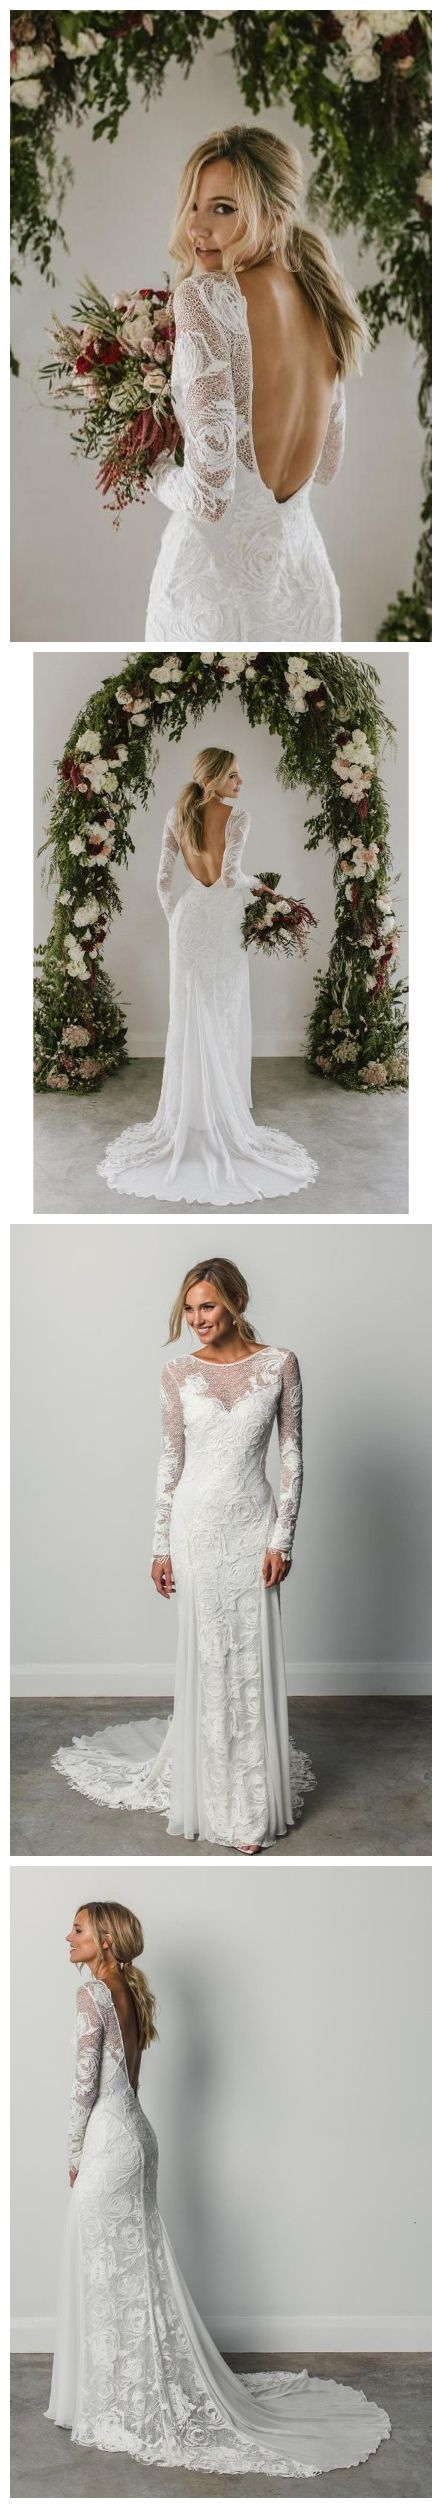 Long sleeve ivory rustic lace wedding dresses backless beach wedding